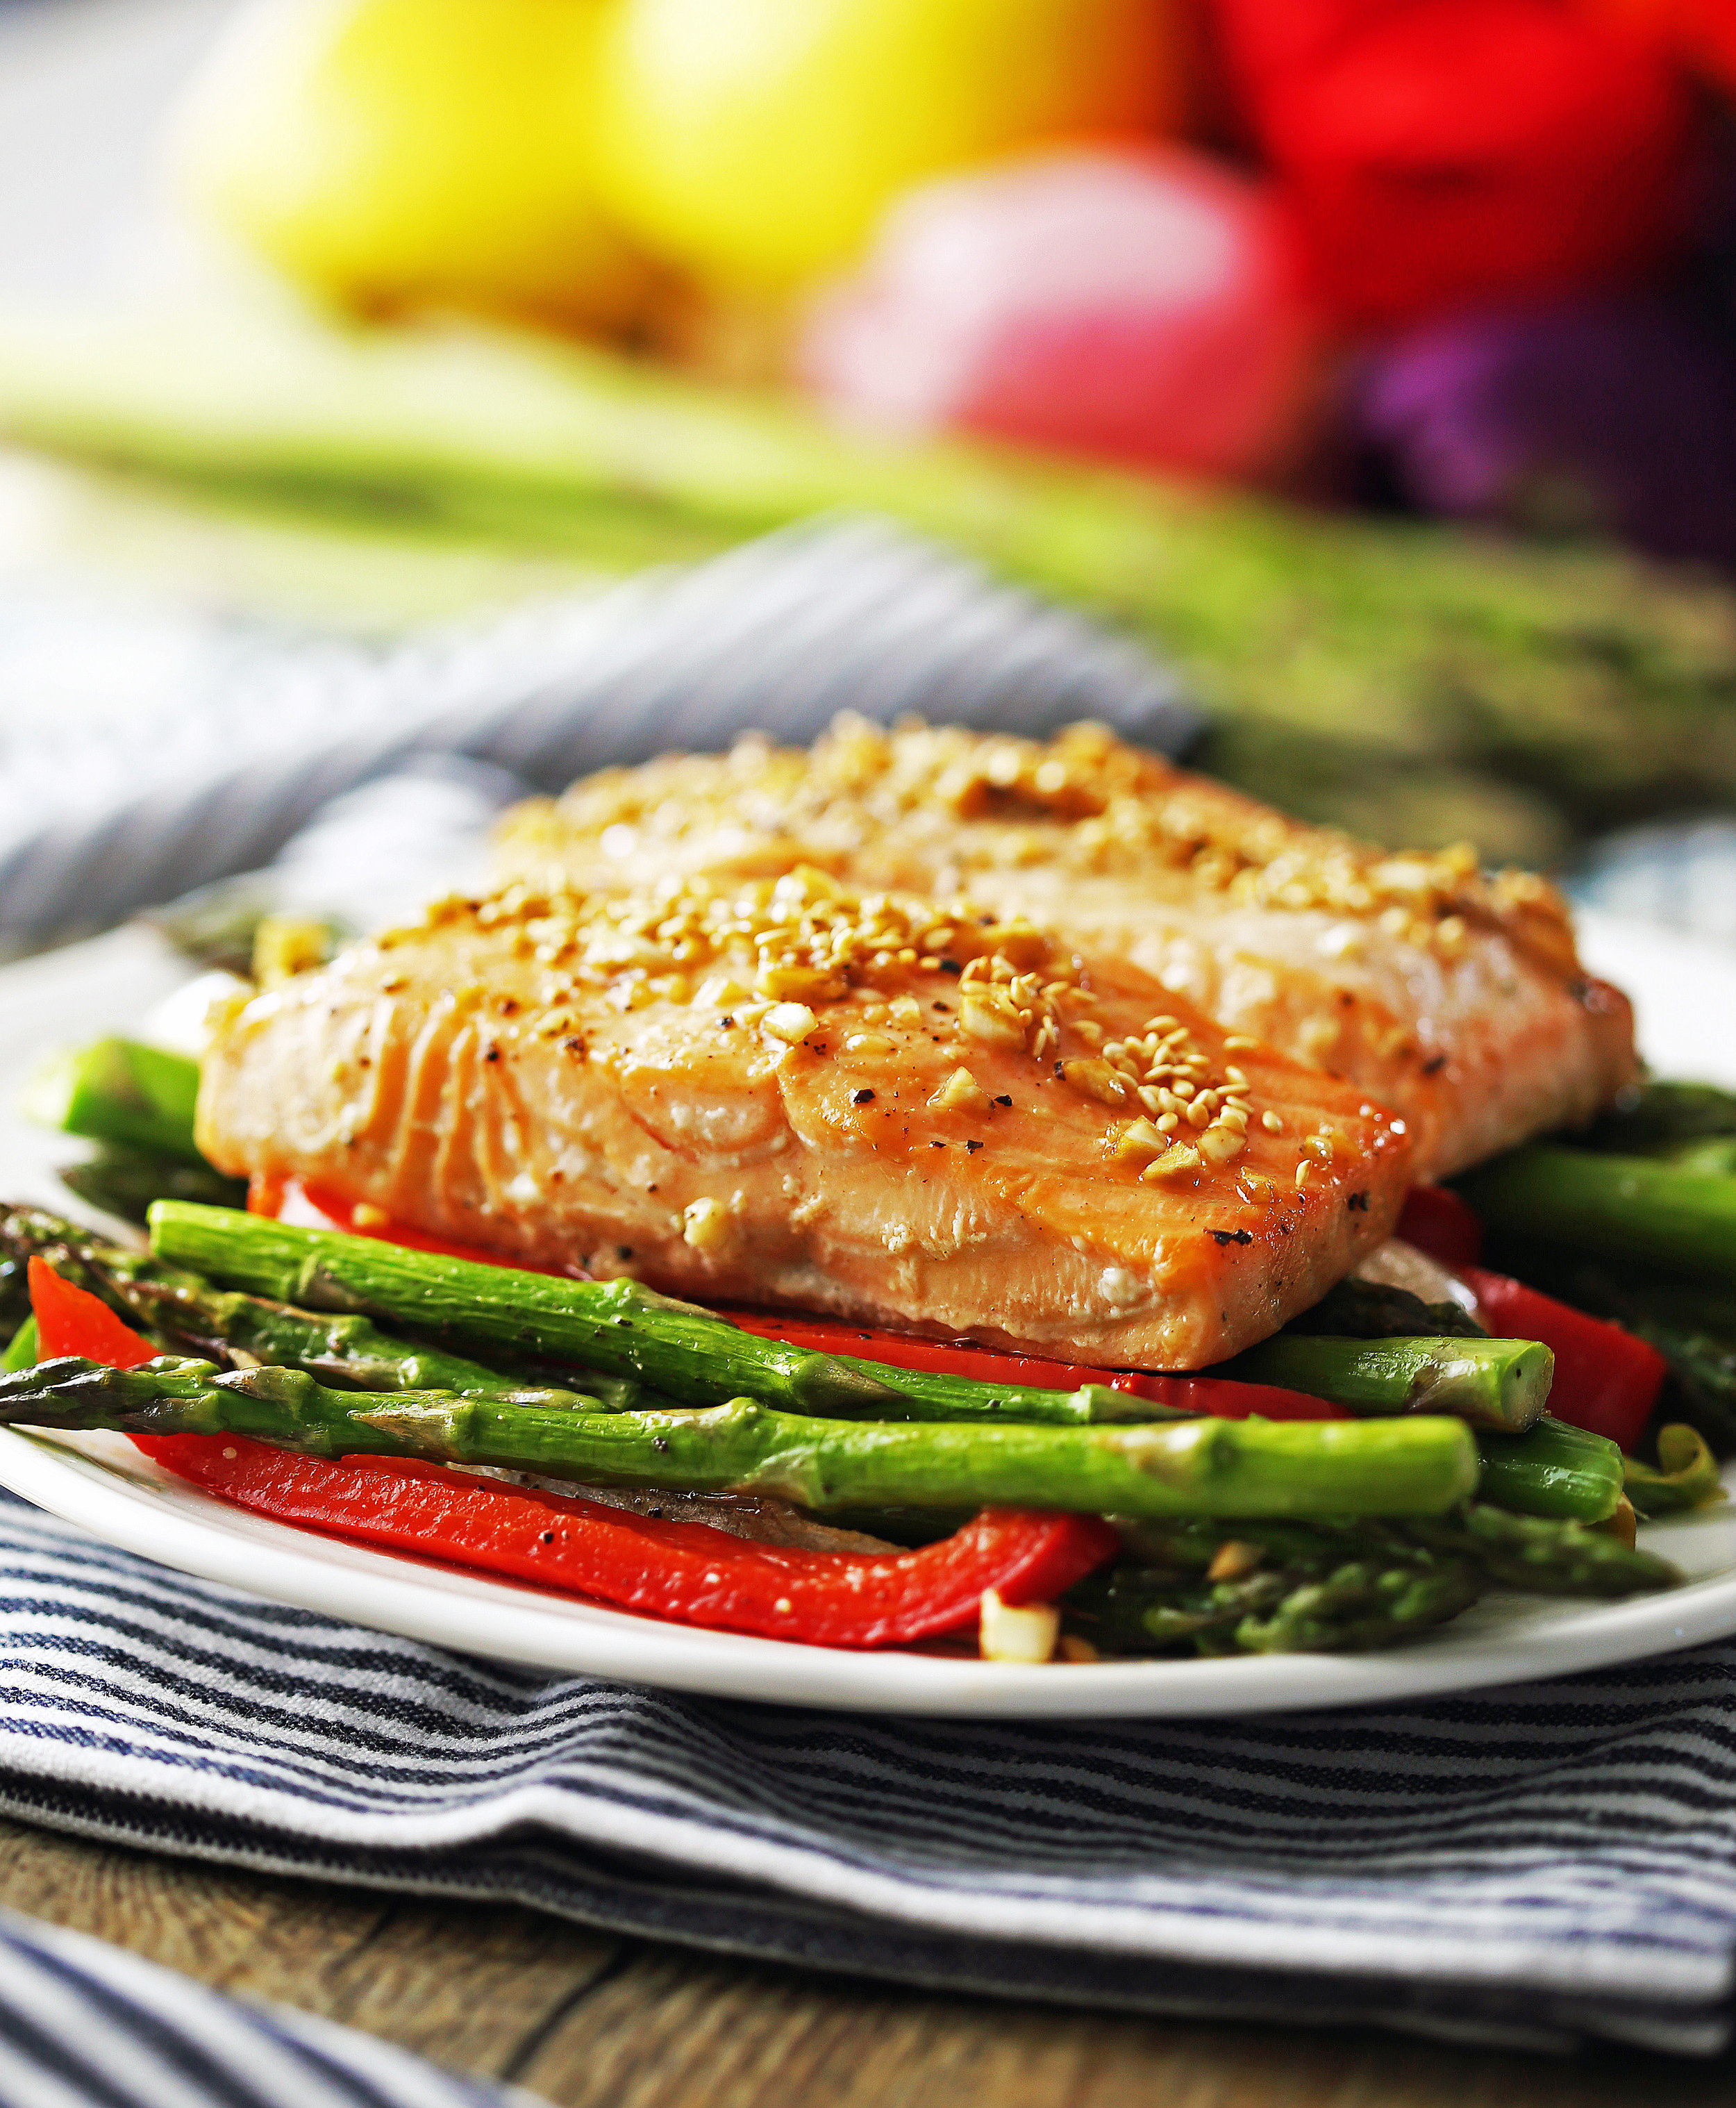 Two baked honey garlic salmon fillets with asparagus and bell pepper on white plate.